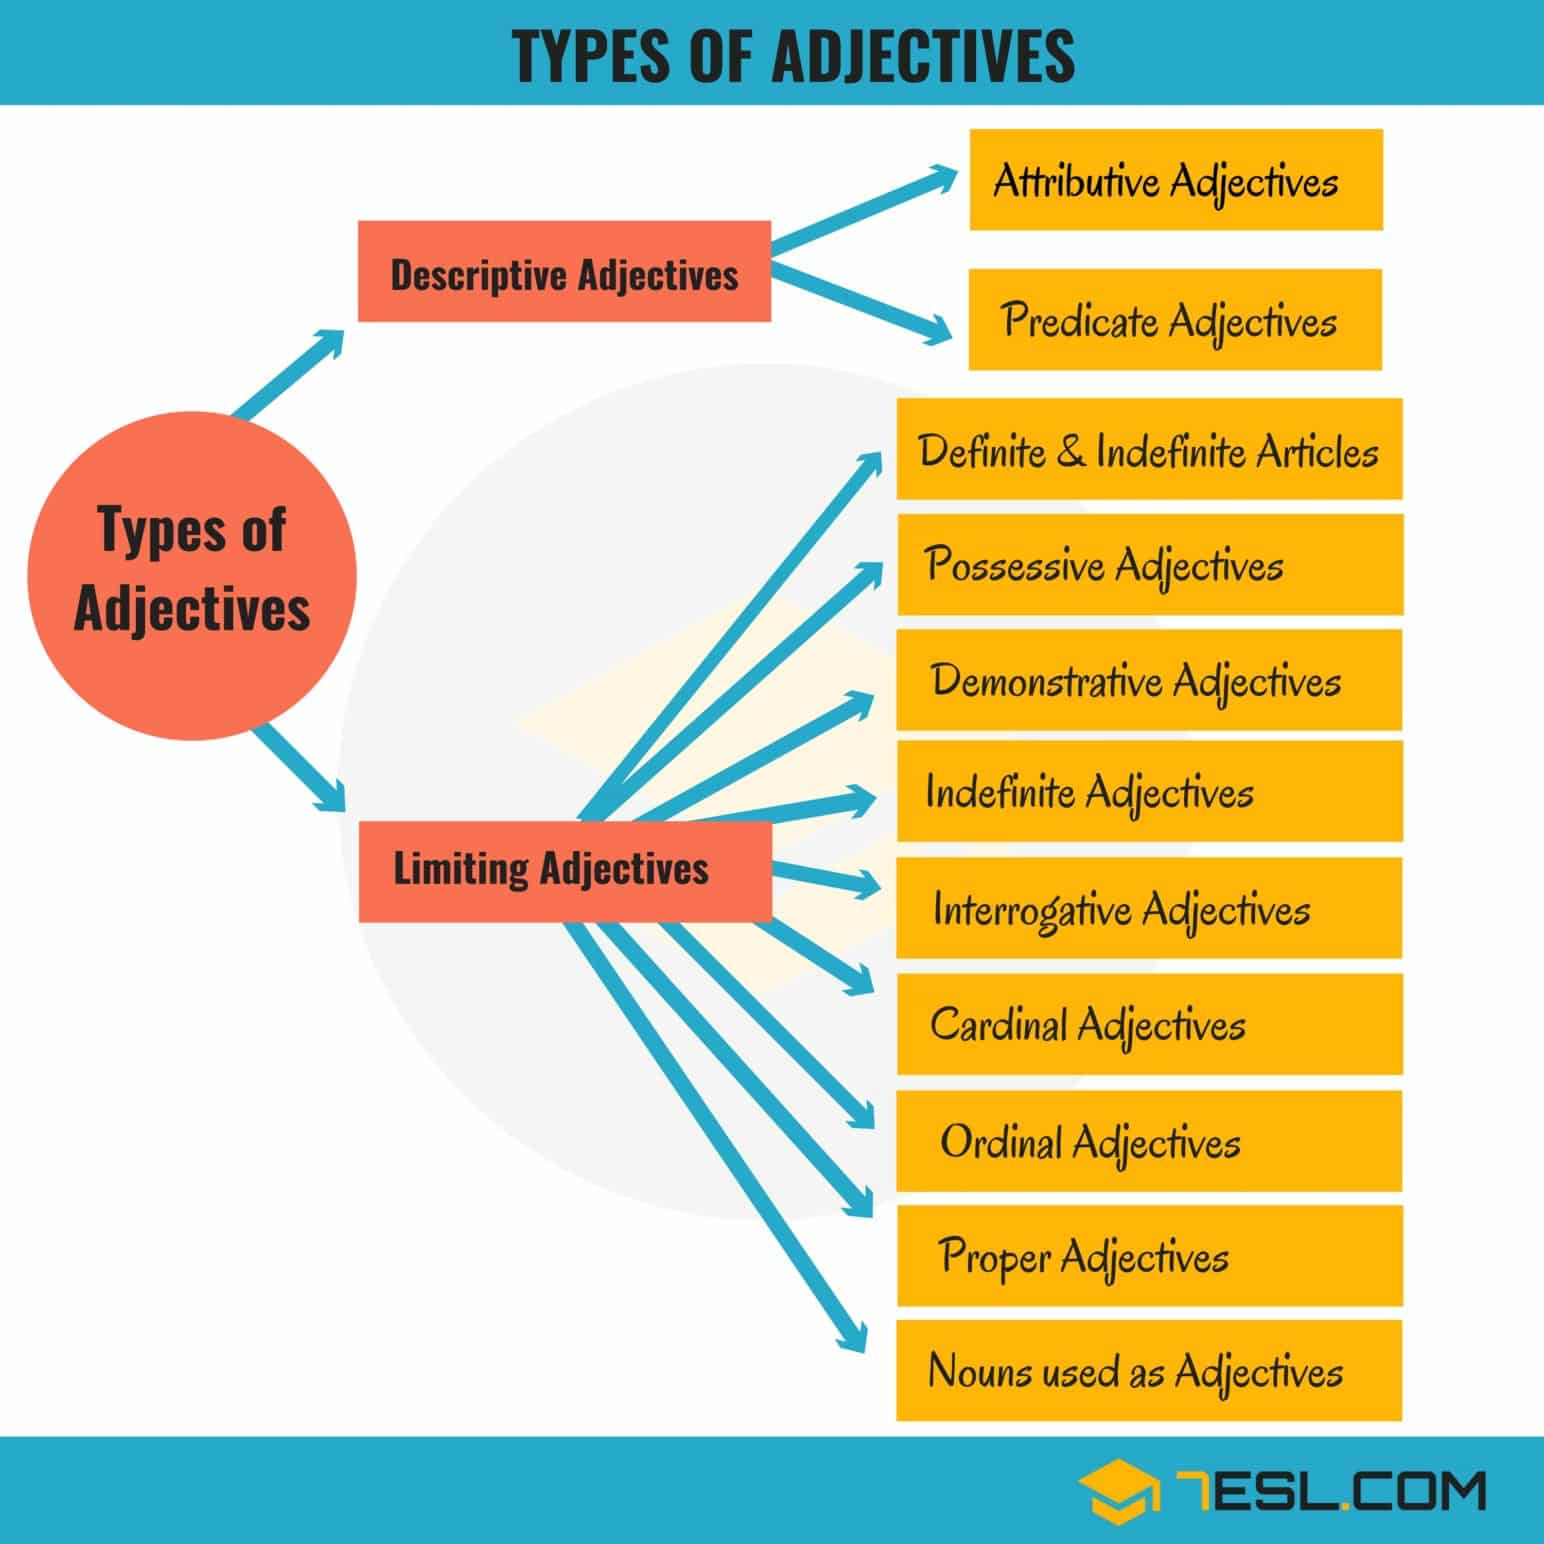 Types of Adjectives in English